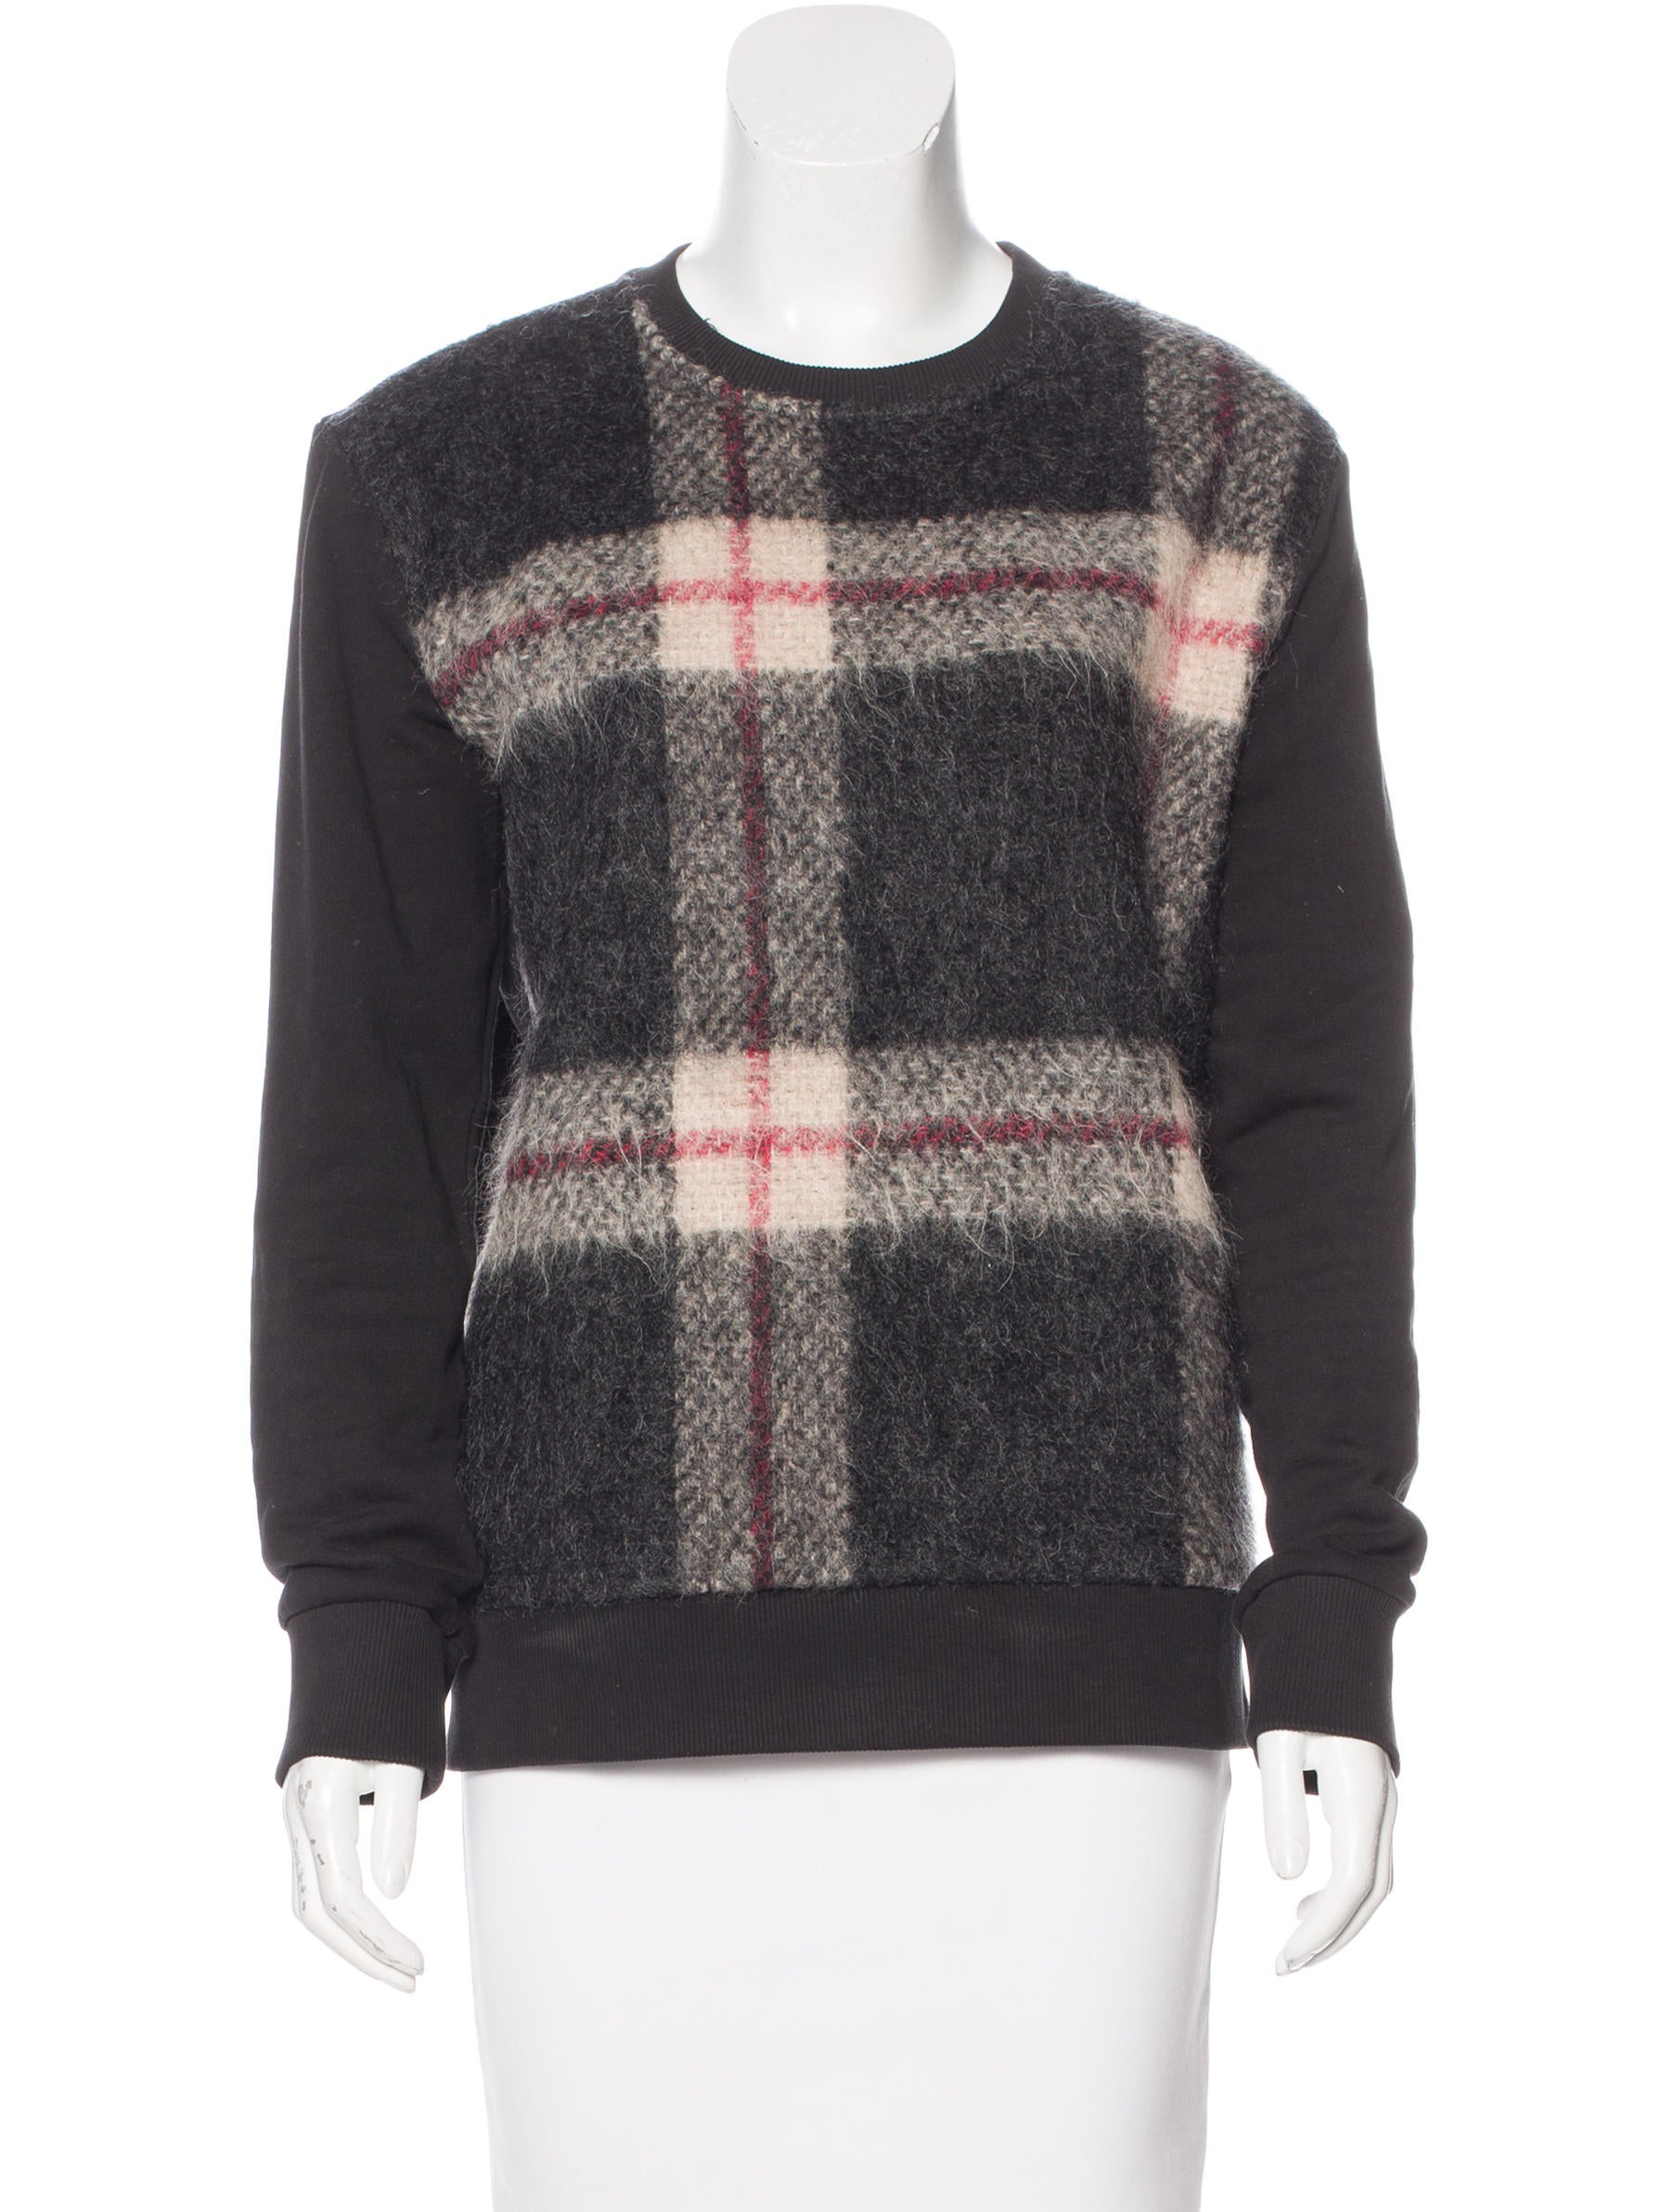 sonia by sonia rykiel wool accented plaid sweatshirt. Black Bedroom Furniture Sets. Home Design Ideas